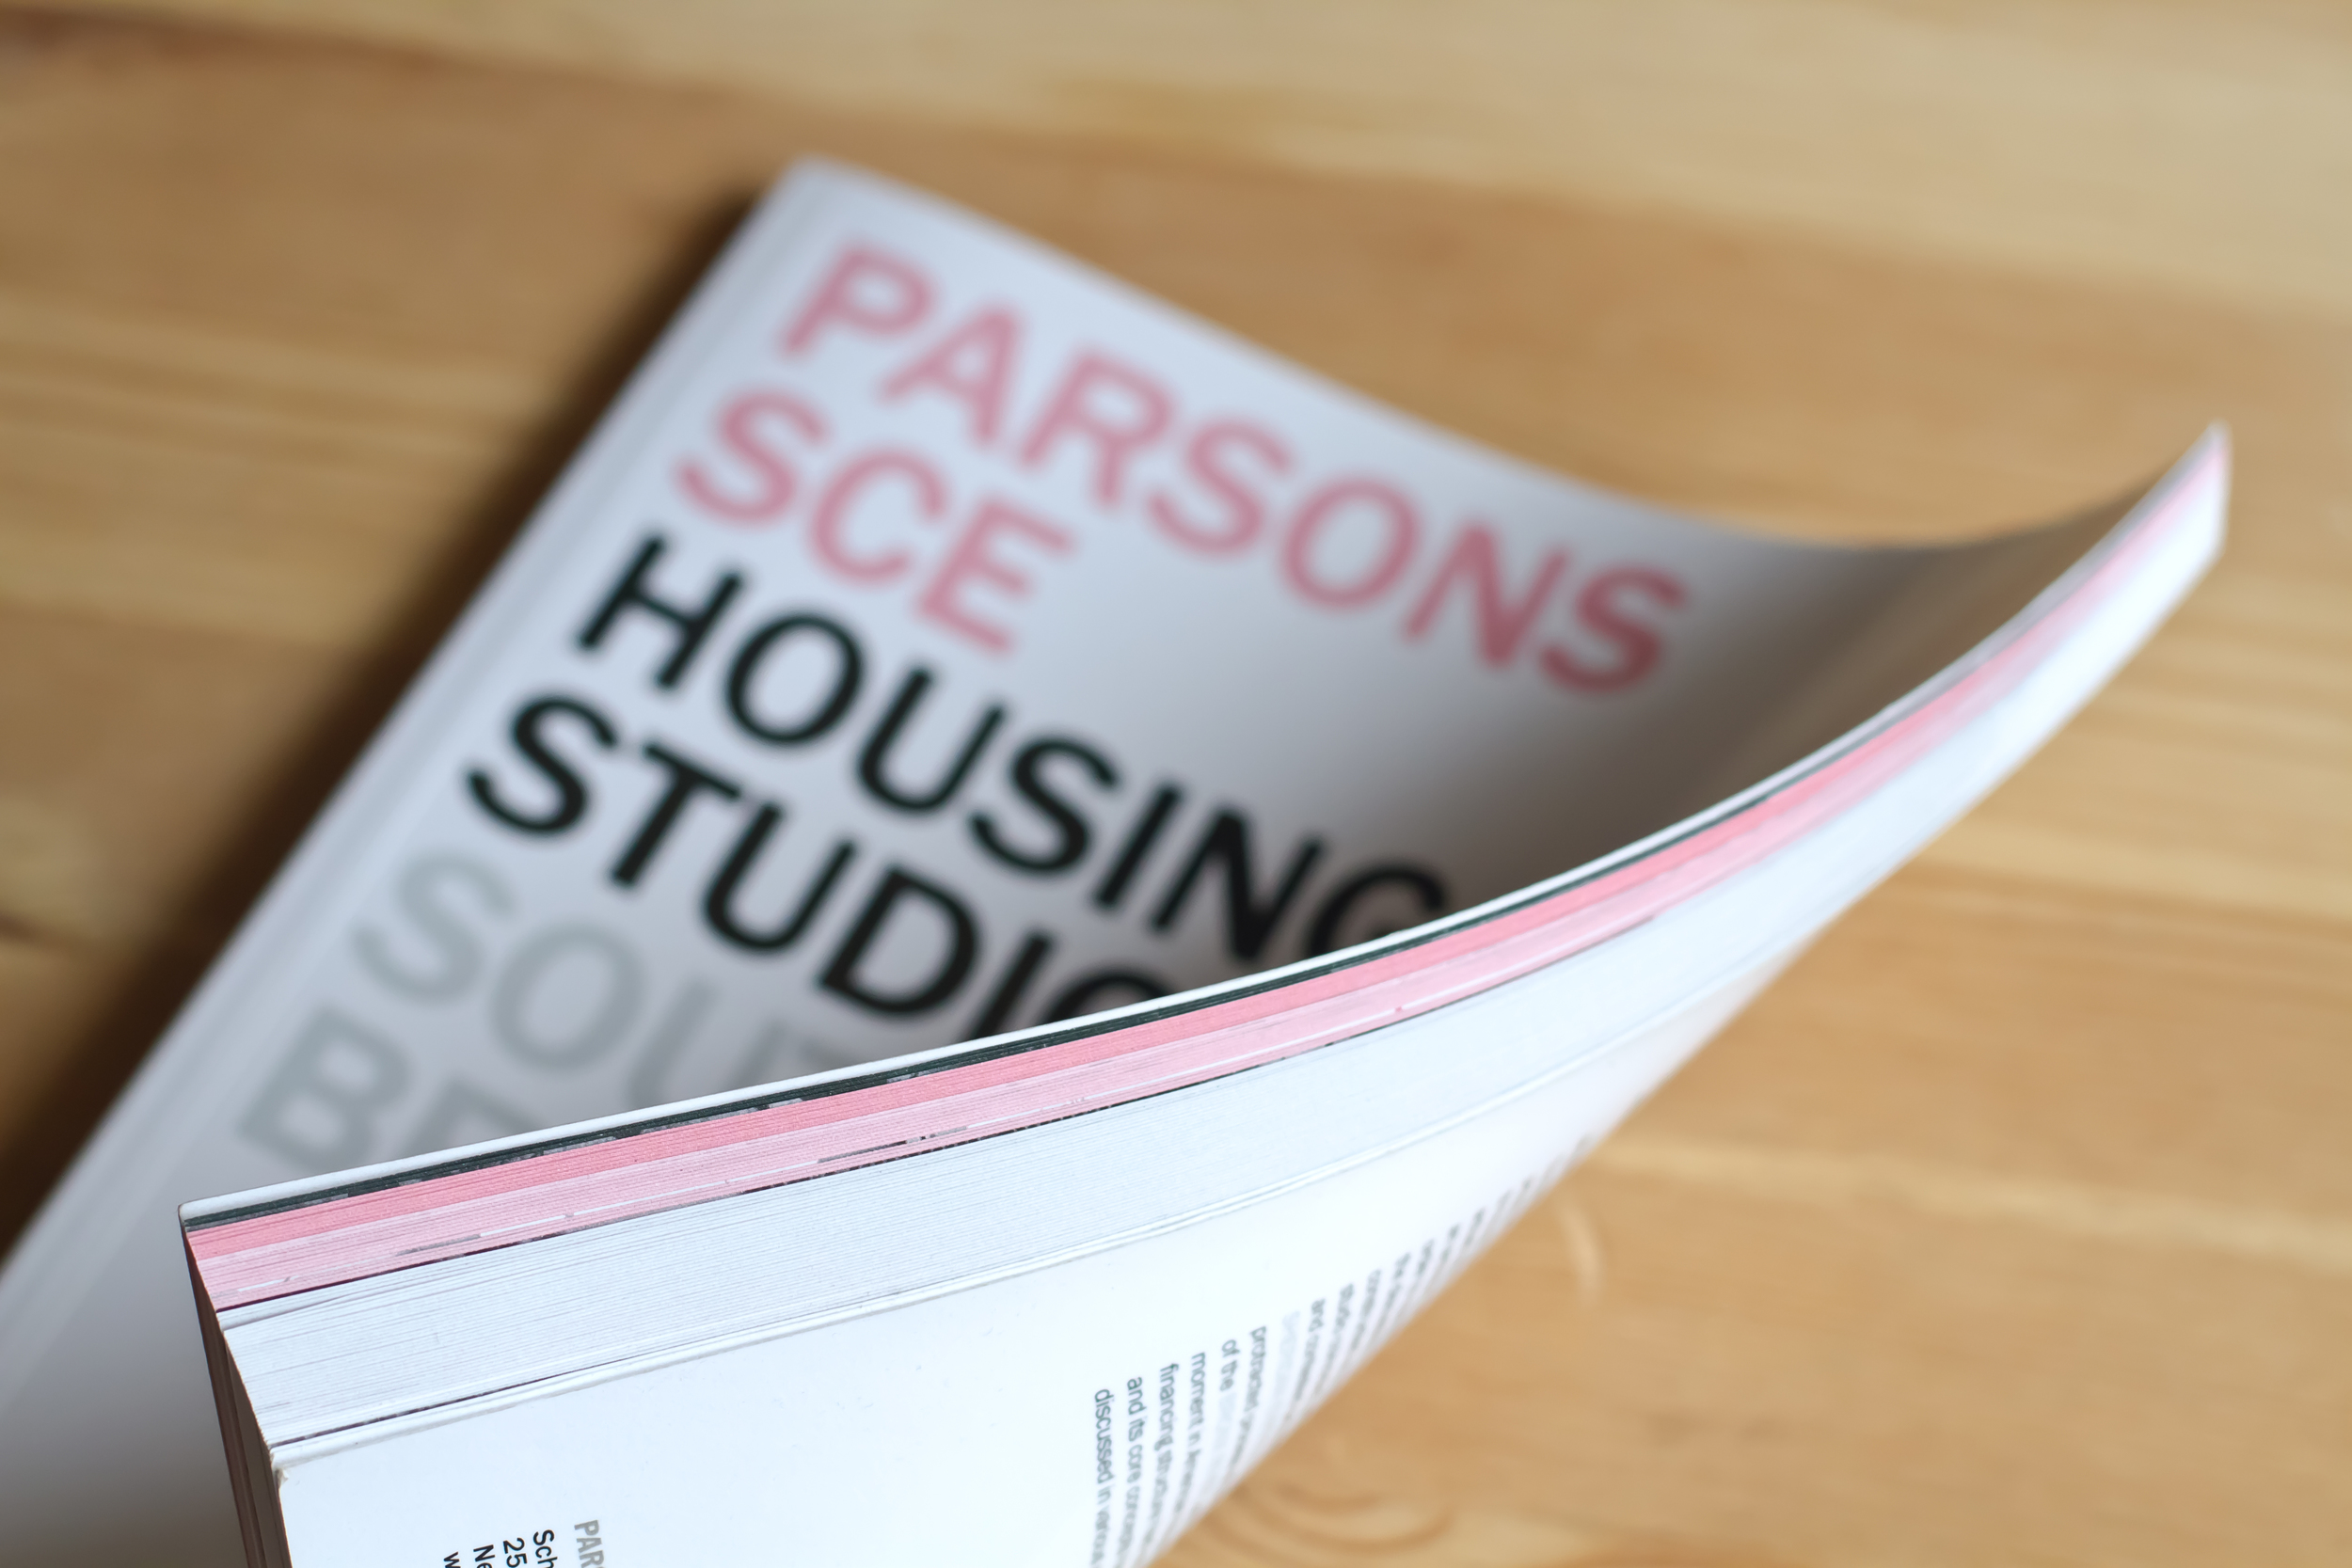 Research pages are identified by a pink edge while student projects are identified with a white edge